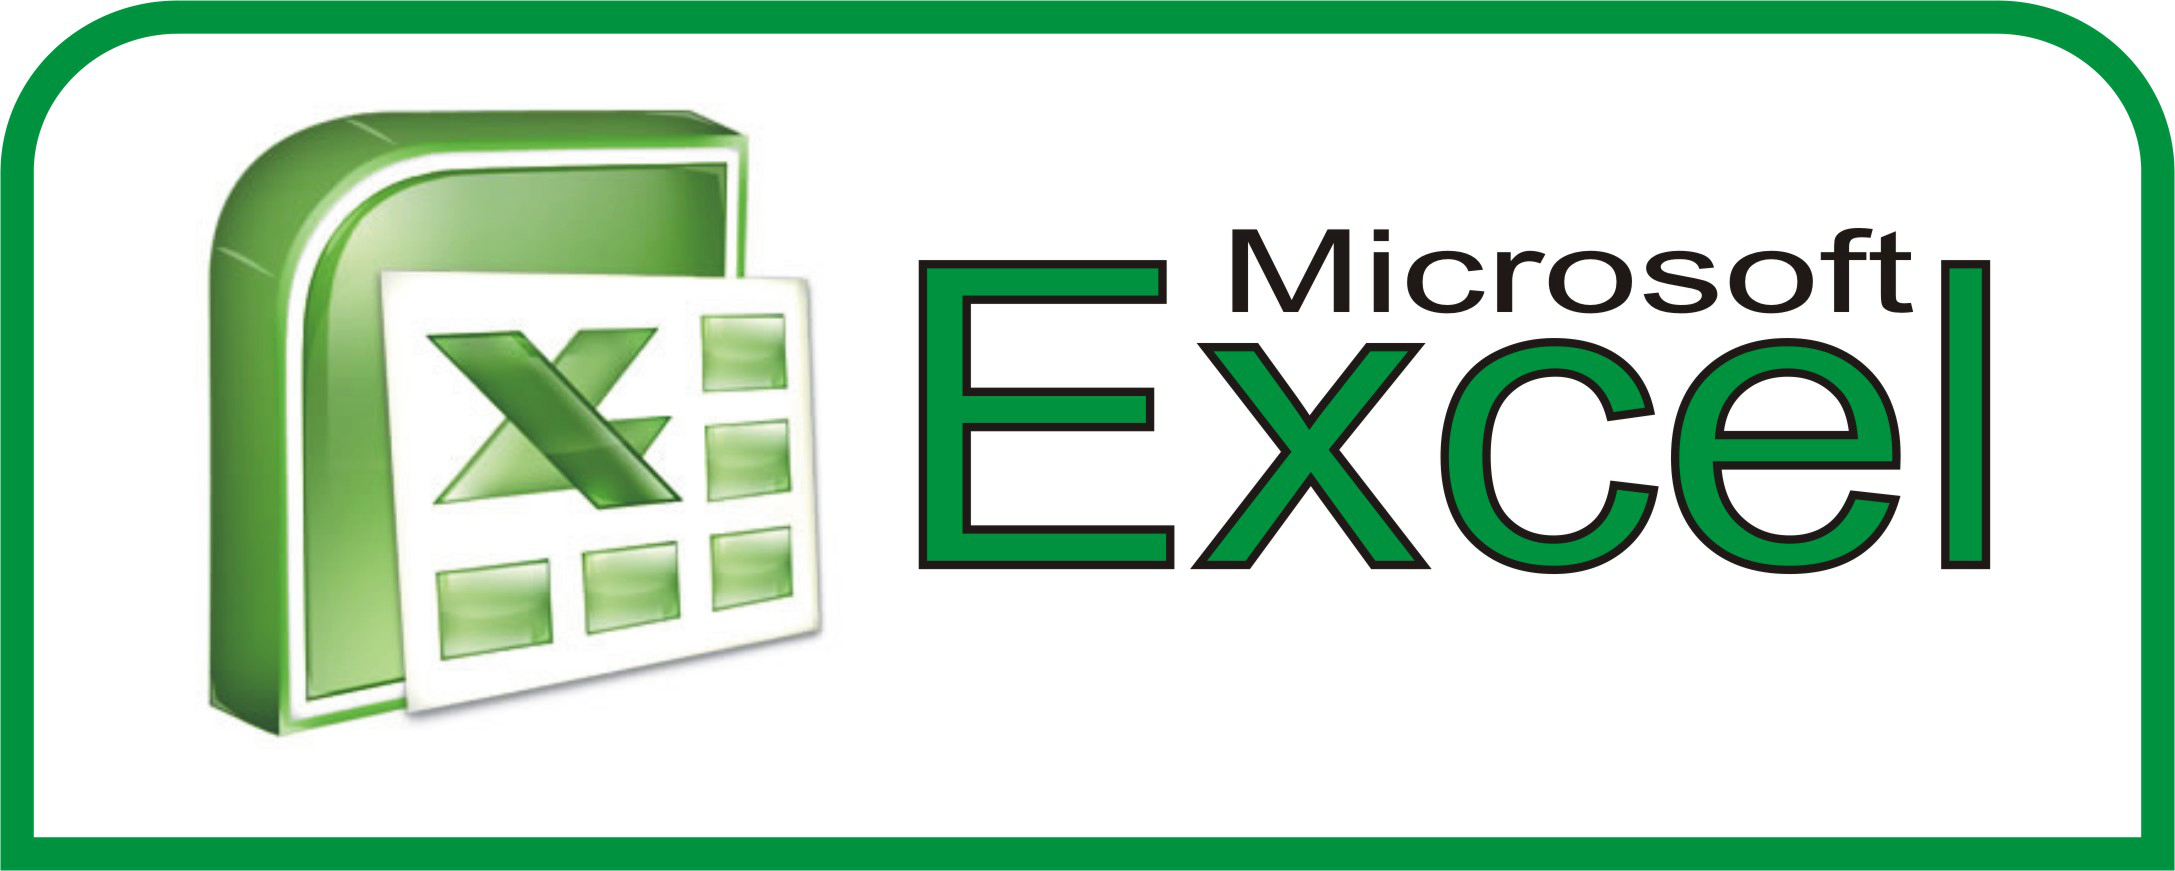 Ediblewildsus  Marvellous  Excel Shortcuts You Probably Didnt Know About  Techdissected With Foxy Calculate Duration In Excel Besides Vba Excel Message Box Furthermore Sort Data Excel With Beautiful Edit Excel Online Also Excel Vba Copy Sheet To Another Workbook In Addition Excel Online Templates And Excel Lock Columns As Well As Excel Group Function Additionally Open Excel Files From Techdissectedcom With Ediblewildsus  Foxy  Excel Shortcuts You Probably Didnt Know About  Techdissected With Beautiful Calculate Duration In Excel Besides Vba Excel Message Box Furthermore Sort Data Excel And Marvellous Edit Excel Online Also Excel Vba Copy Sheet To Another Workbook In Addition Excel Online Templates From Techdissectedcom